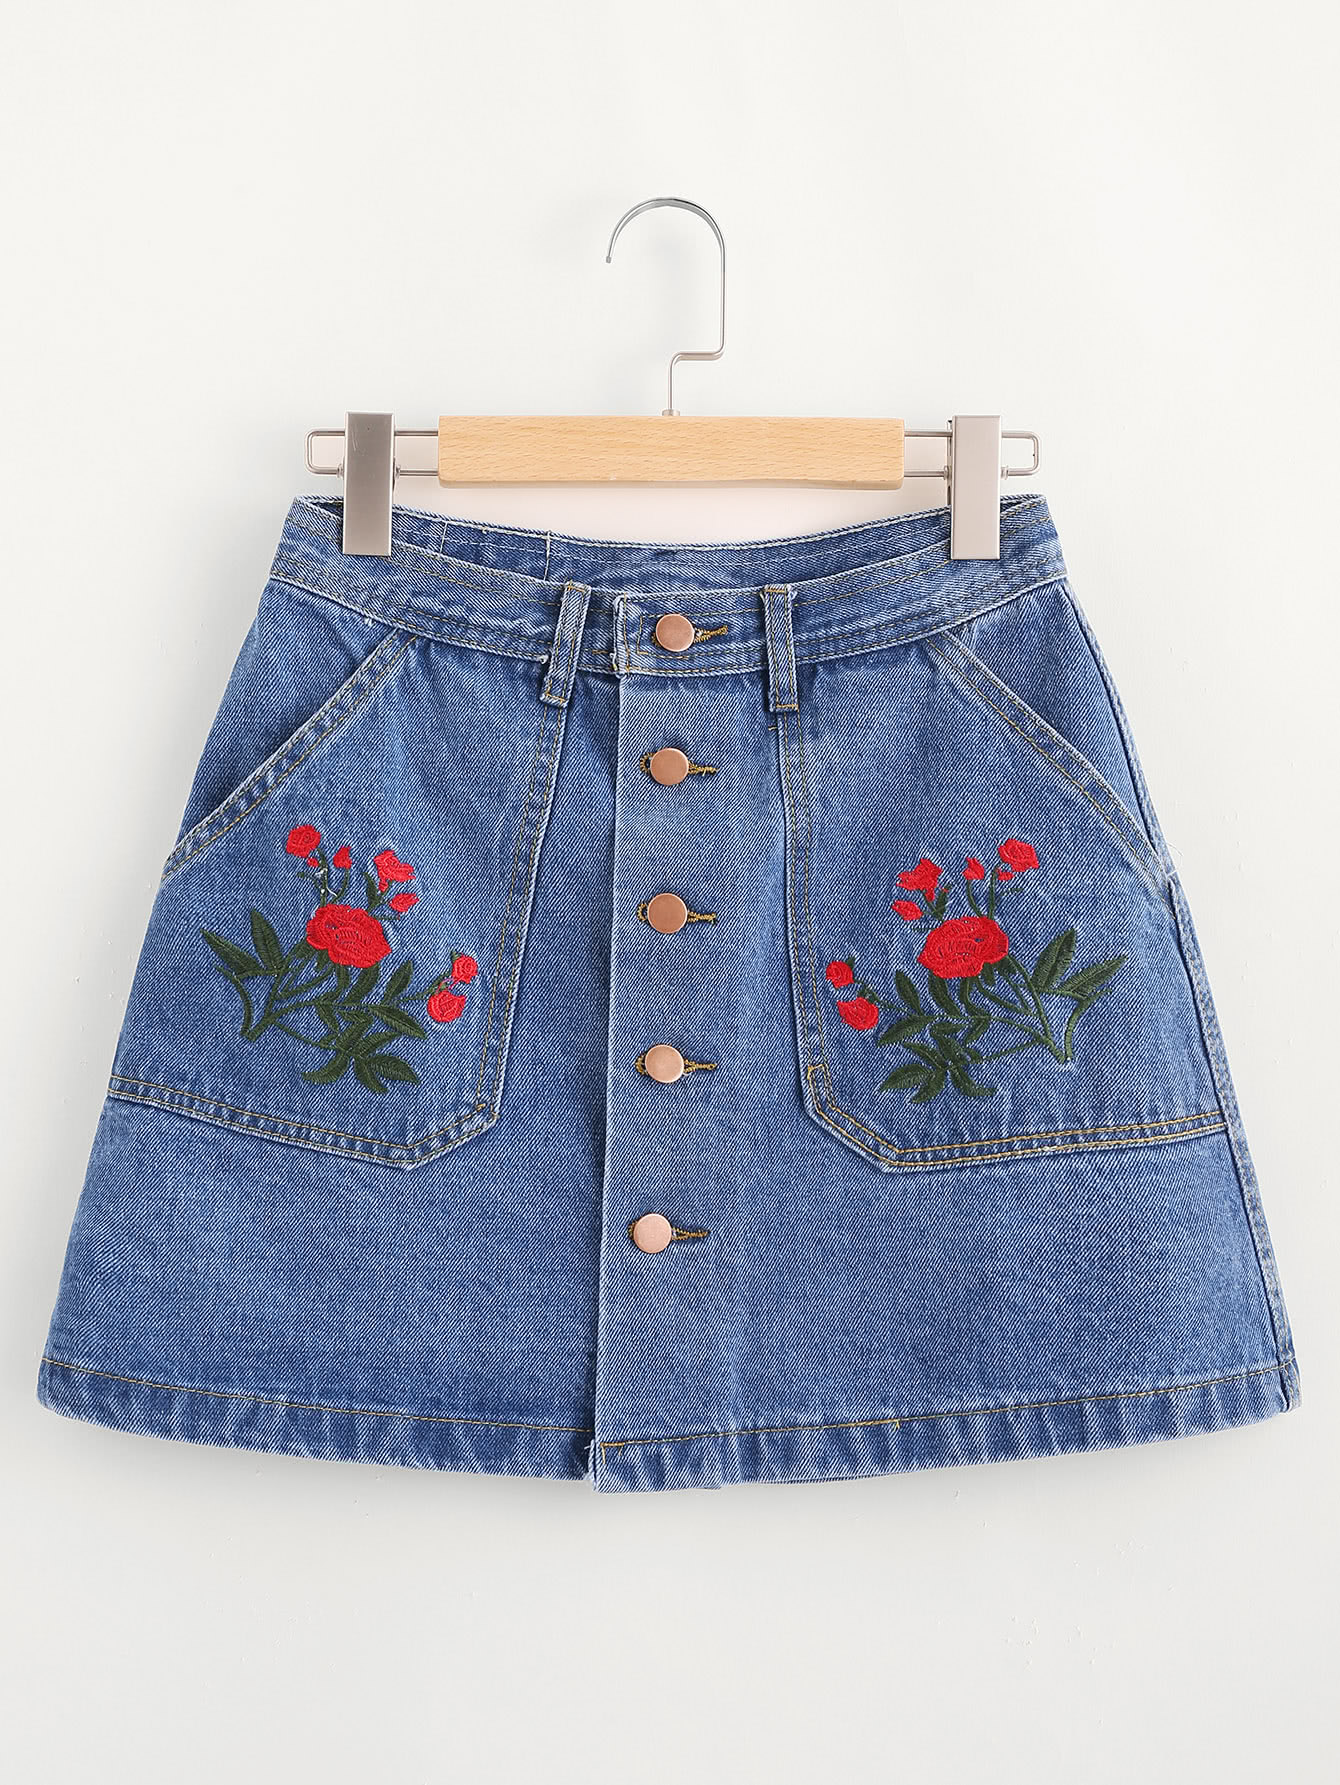 Floral Embroidered Single Breasted A Line Denim Skirt floral embroidered corduroy a line skirt